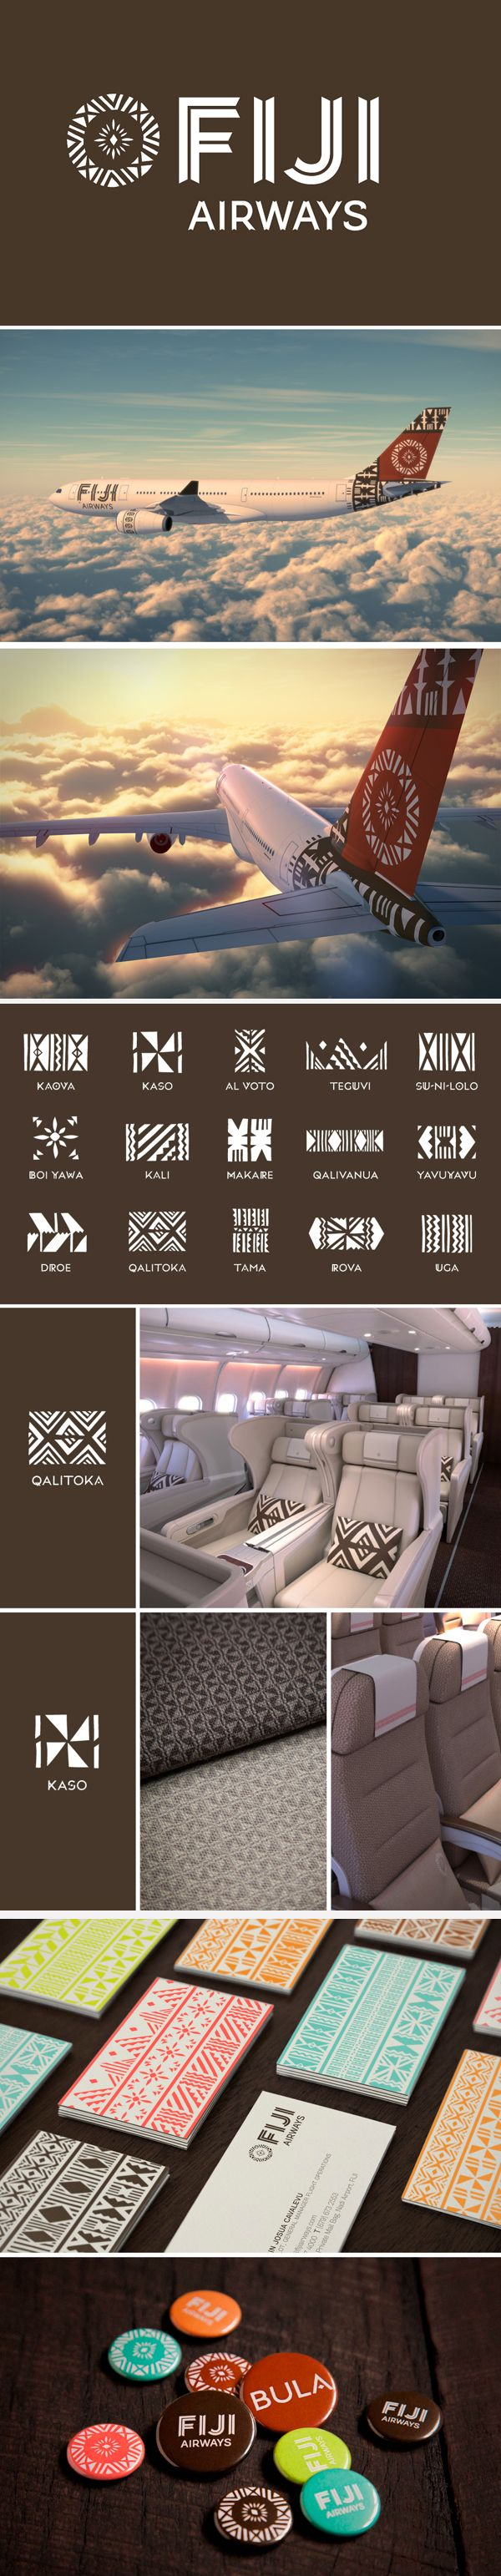 identity / FIJI airways | #stationary #corporate #design #corporatedesign #identity #branding #marketing < repinned by www.BlickeDeeler.de | Visit our website: www.blickedeeler.de/leistungen/corporate-design..